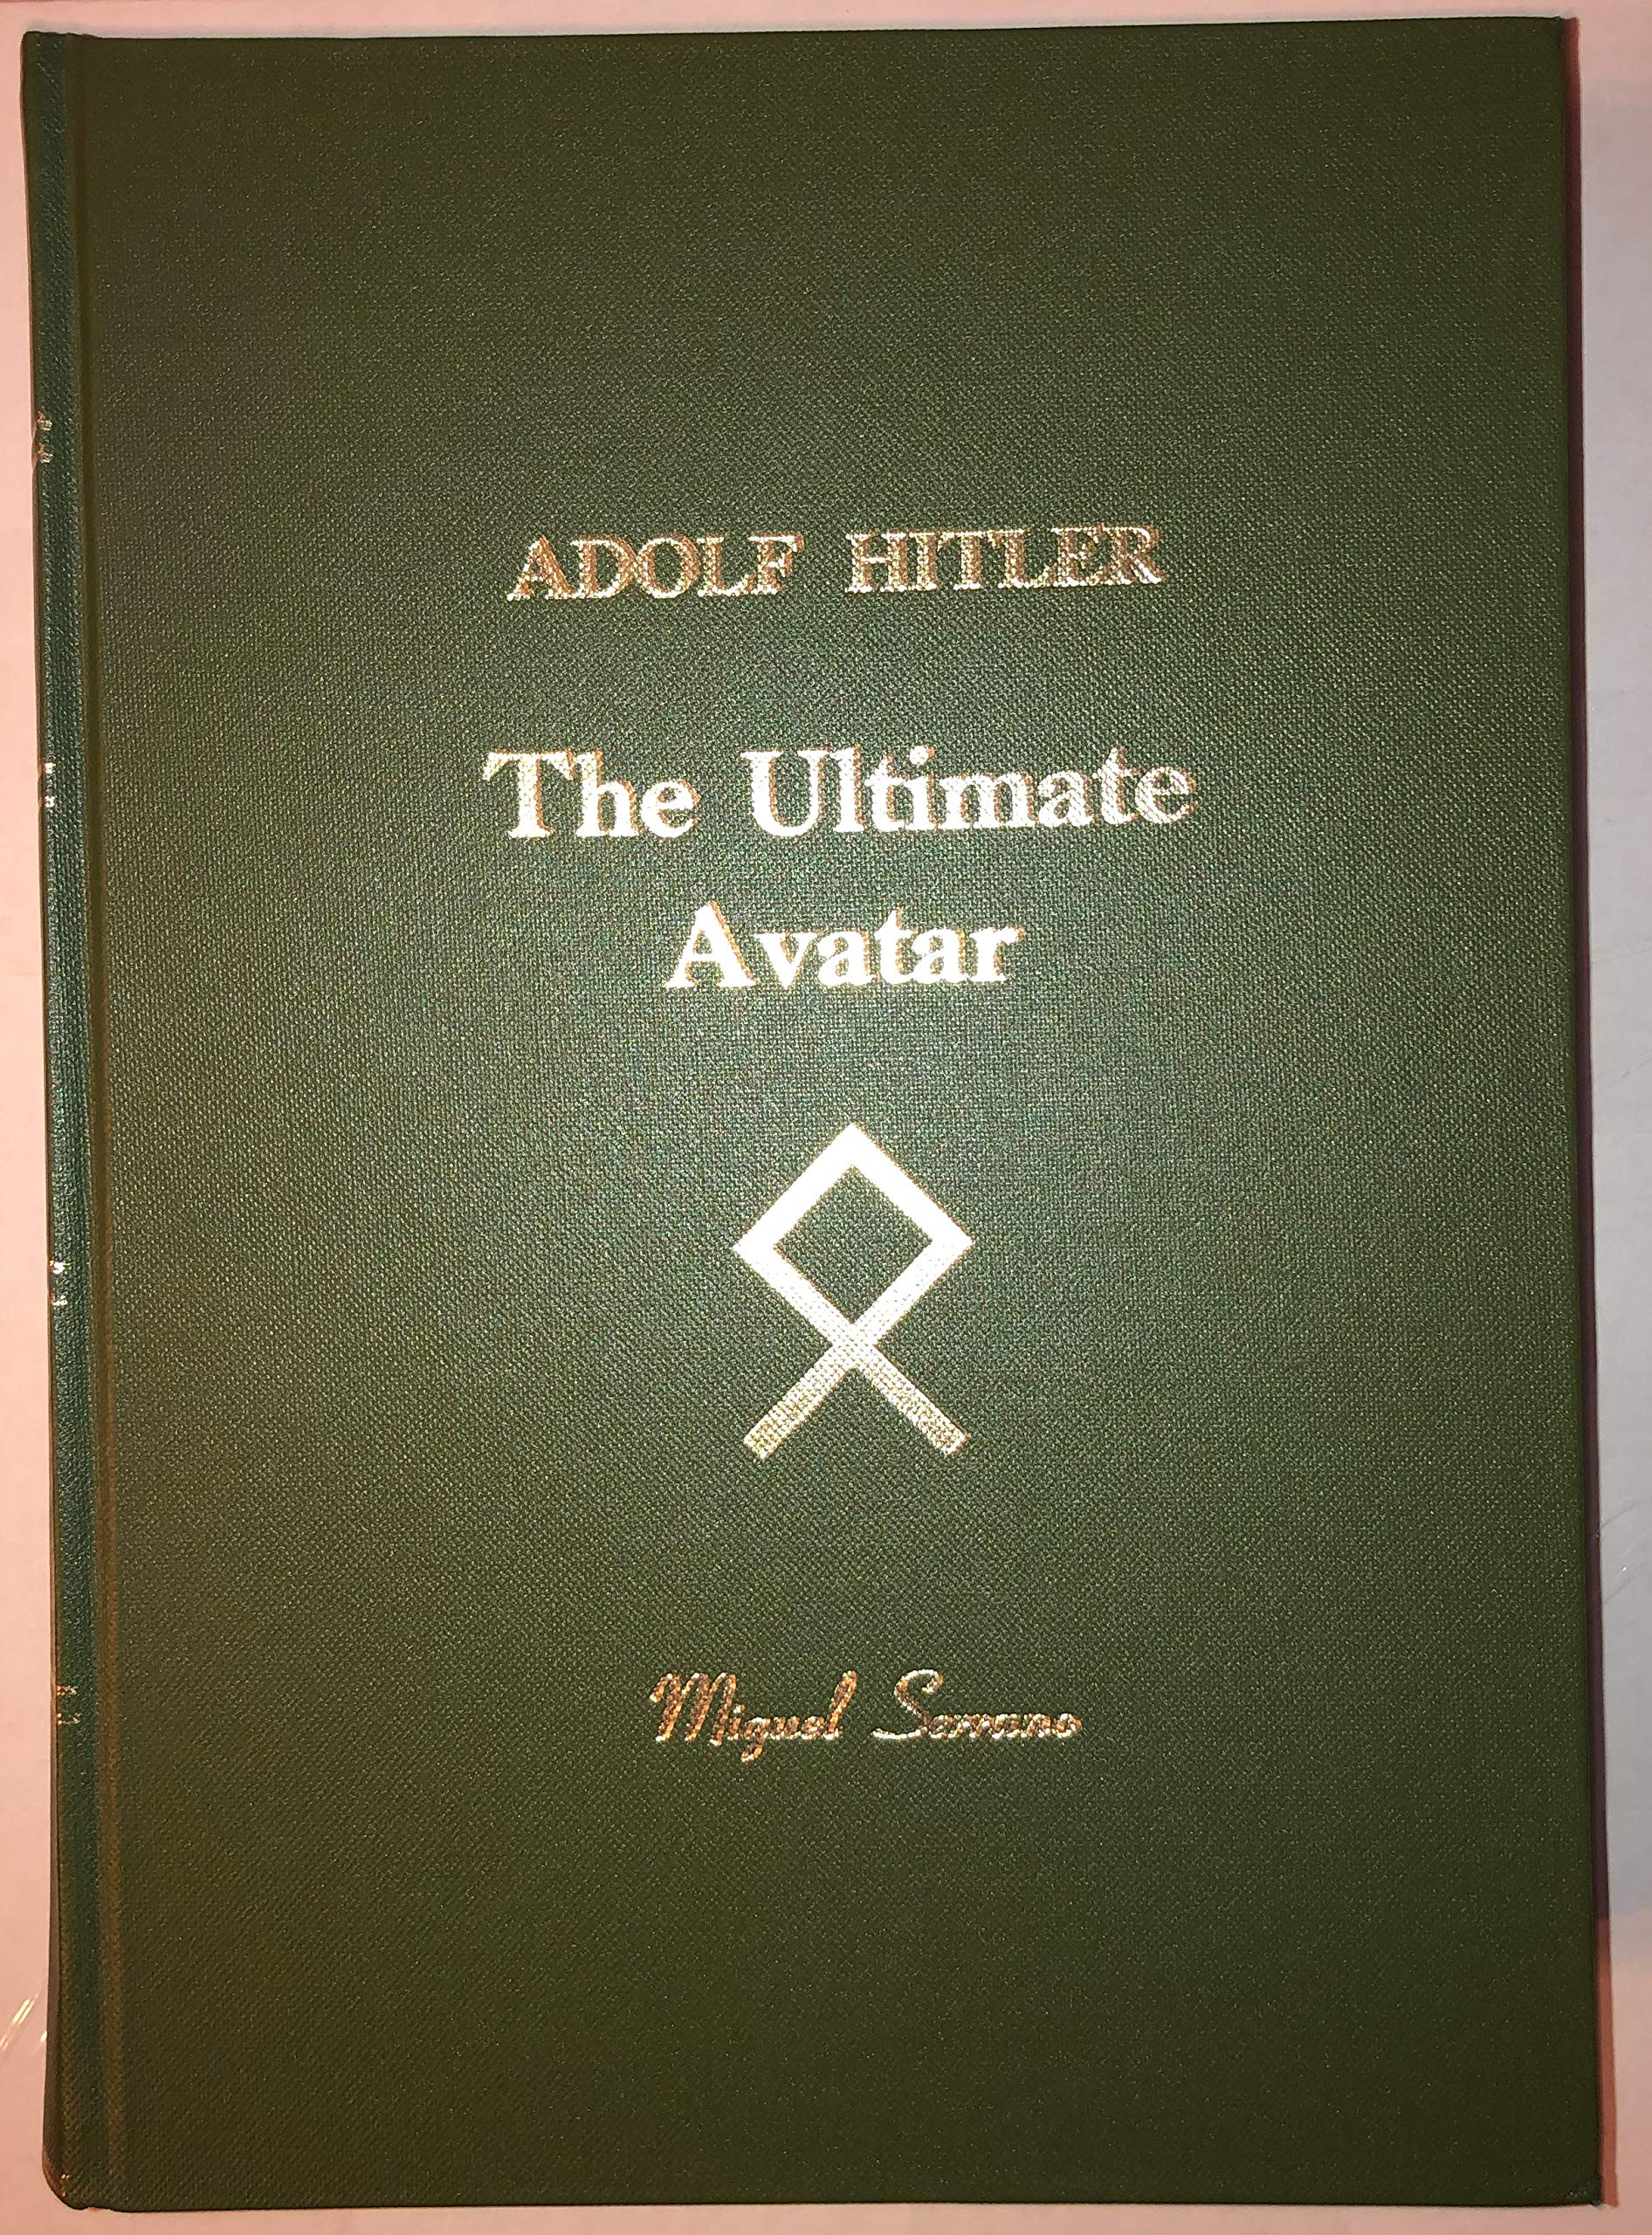 Adolf Hitler The Ultimate Avatar By Miguel Serrano